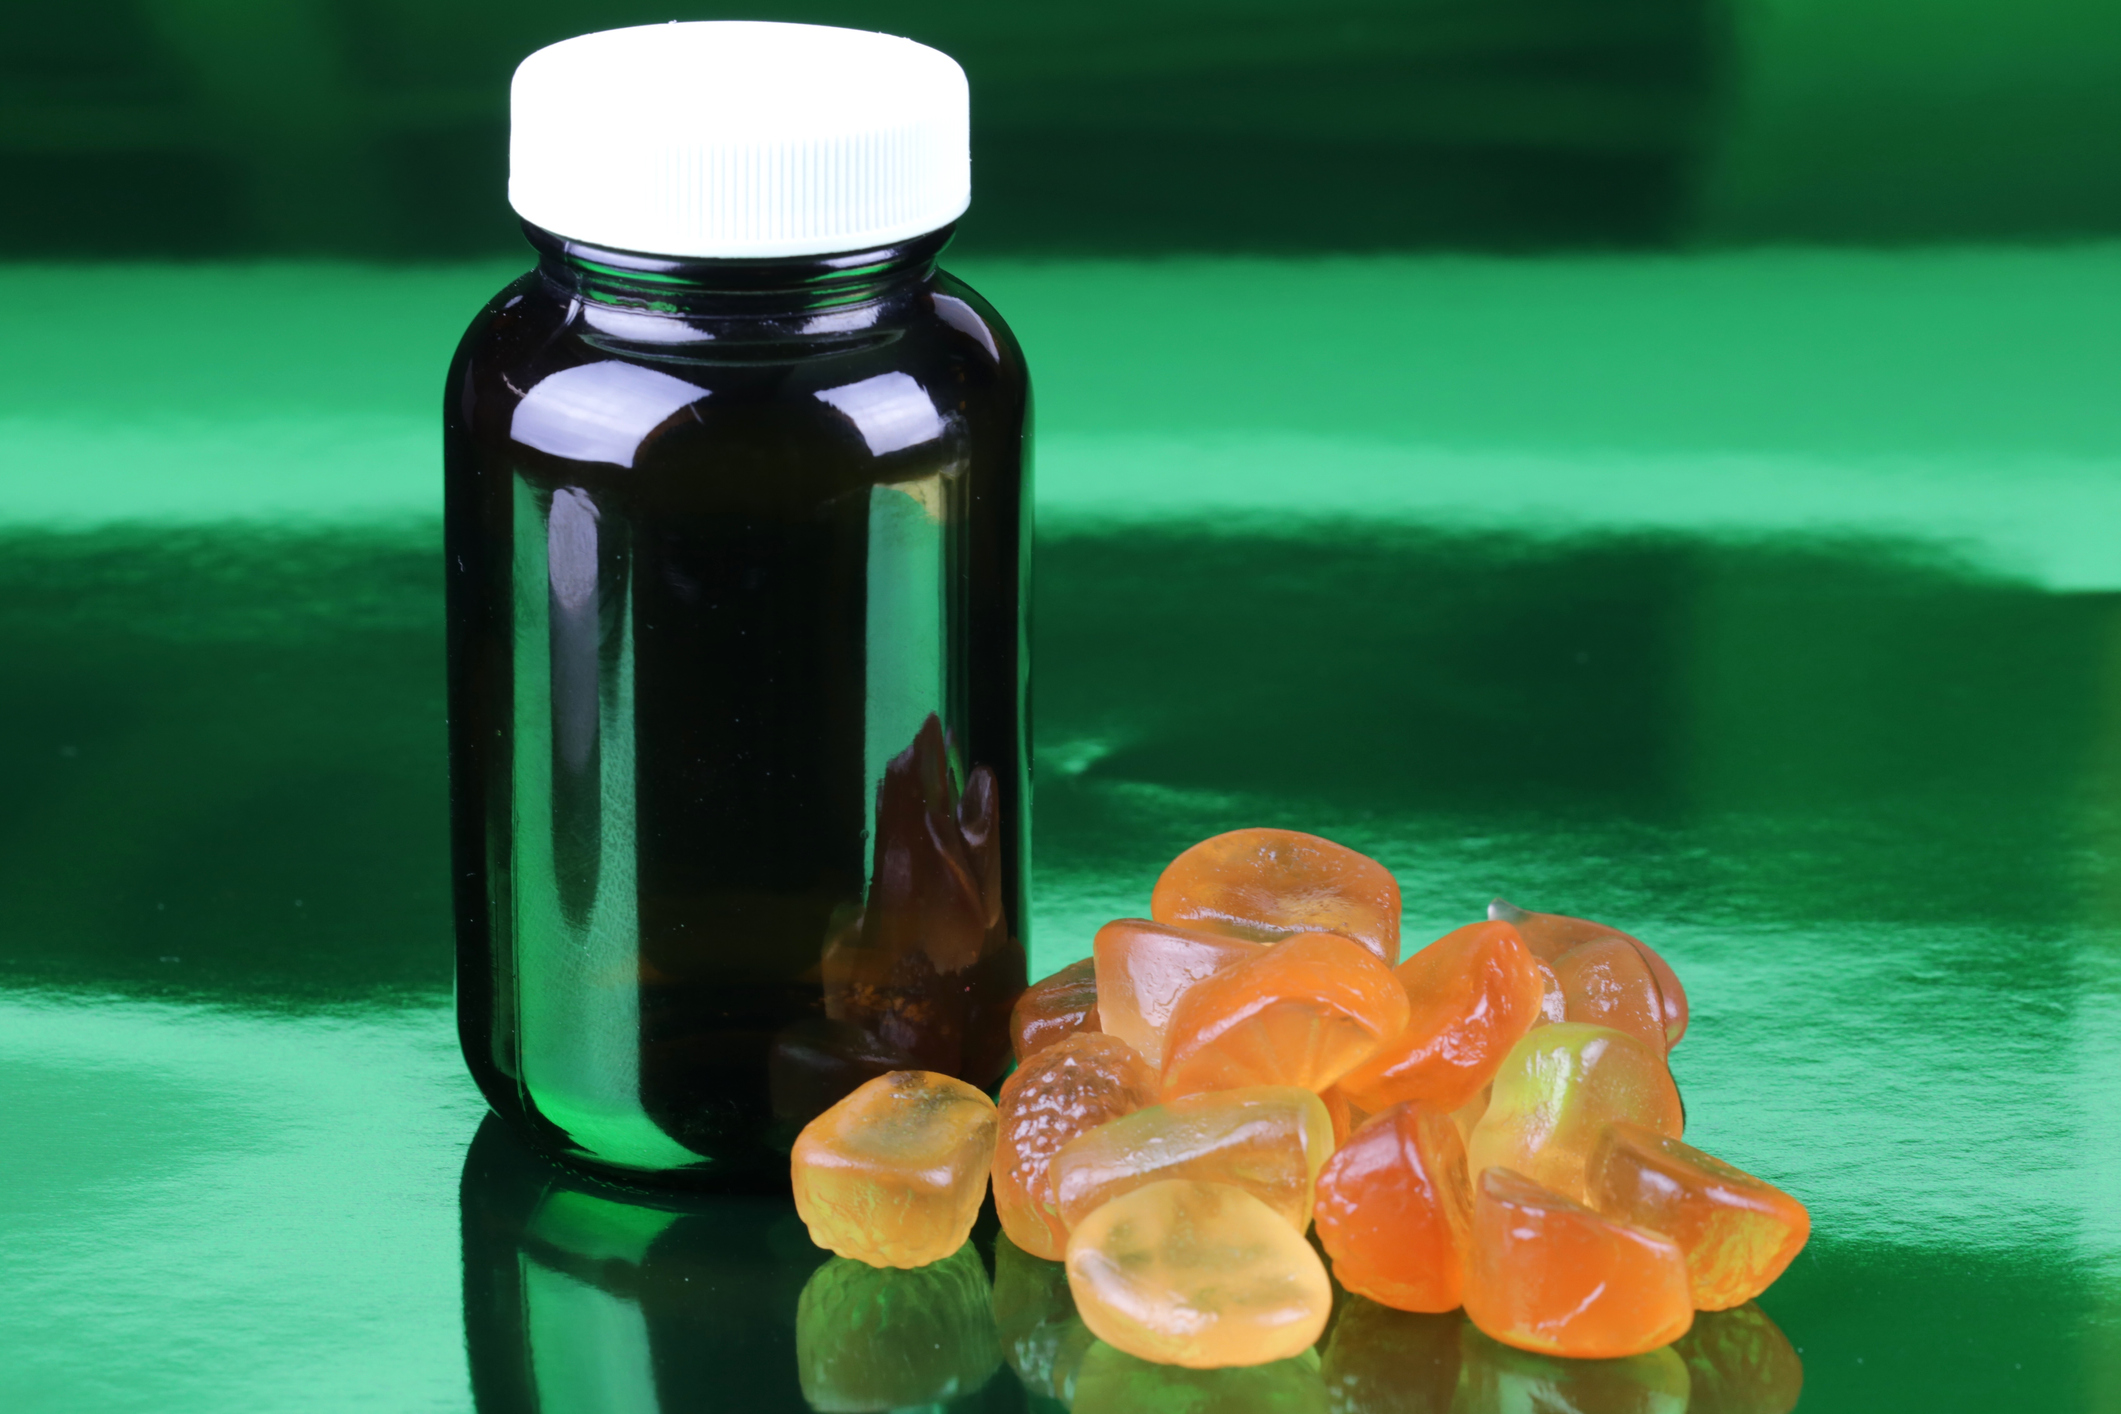 New product lines in the form of candies and vitamins are proliferating, aimed at improving mental health.